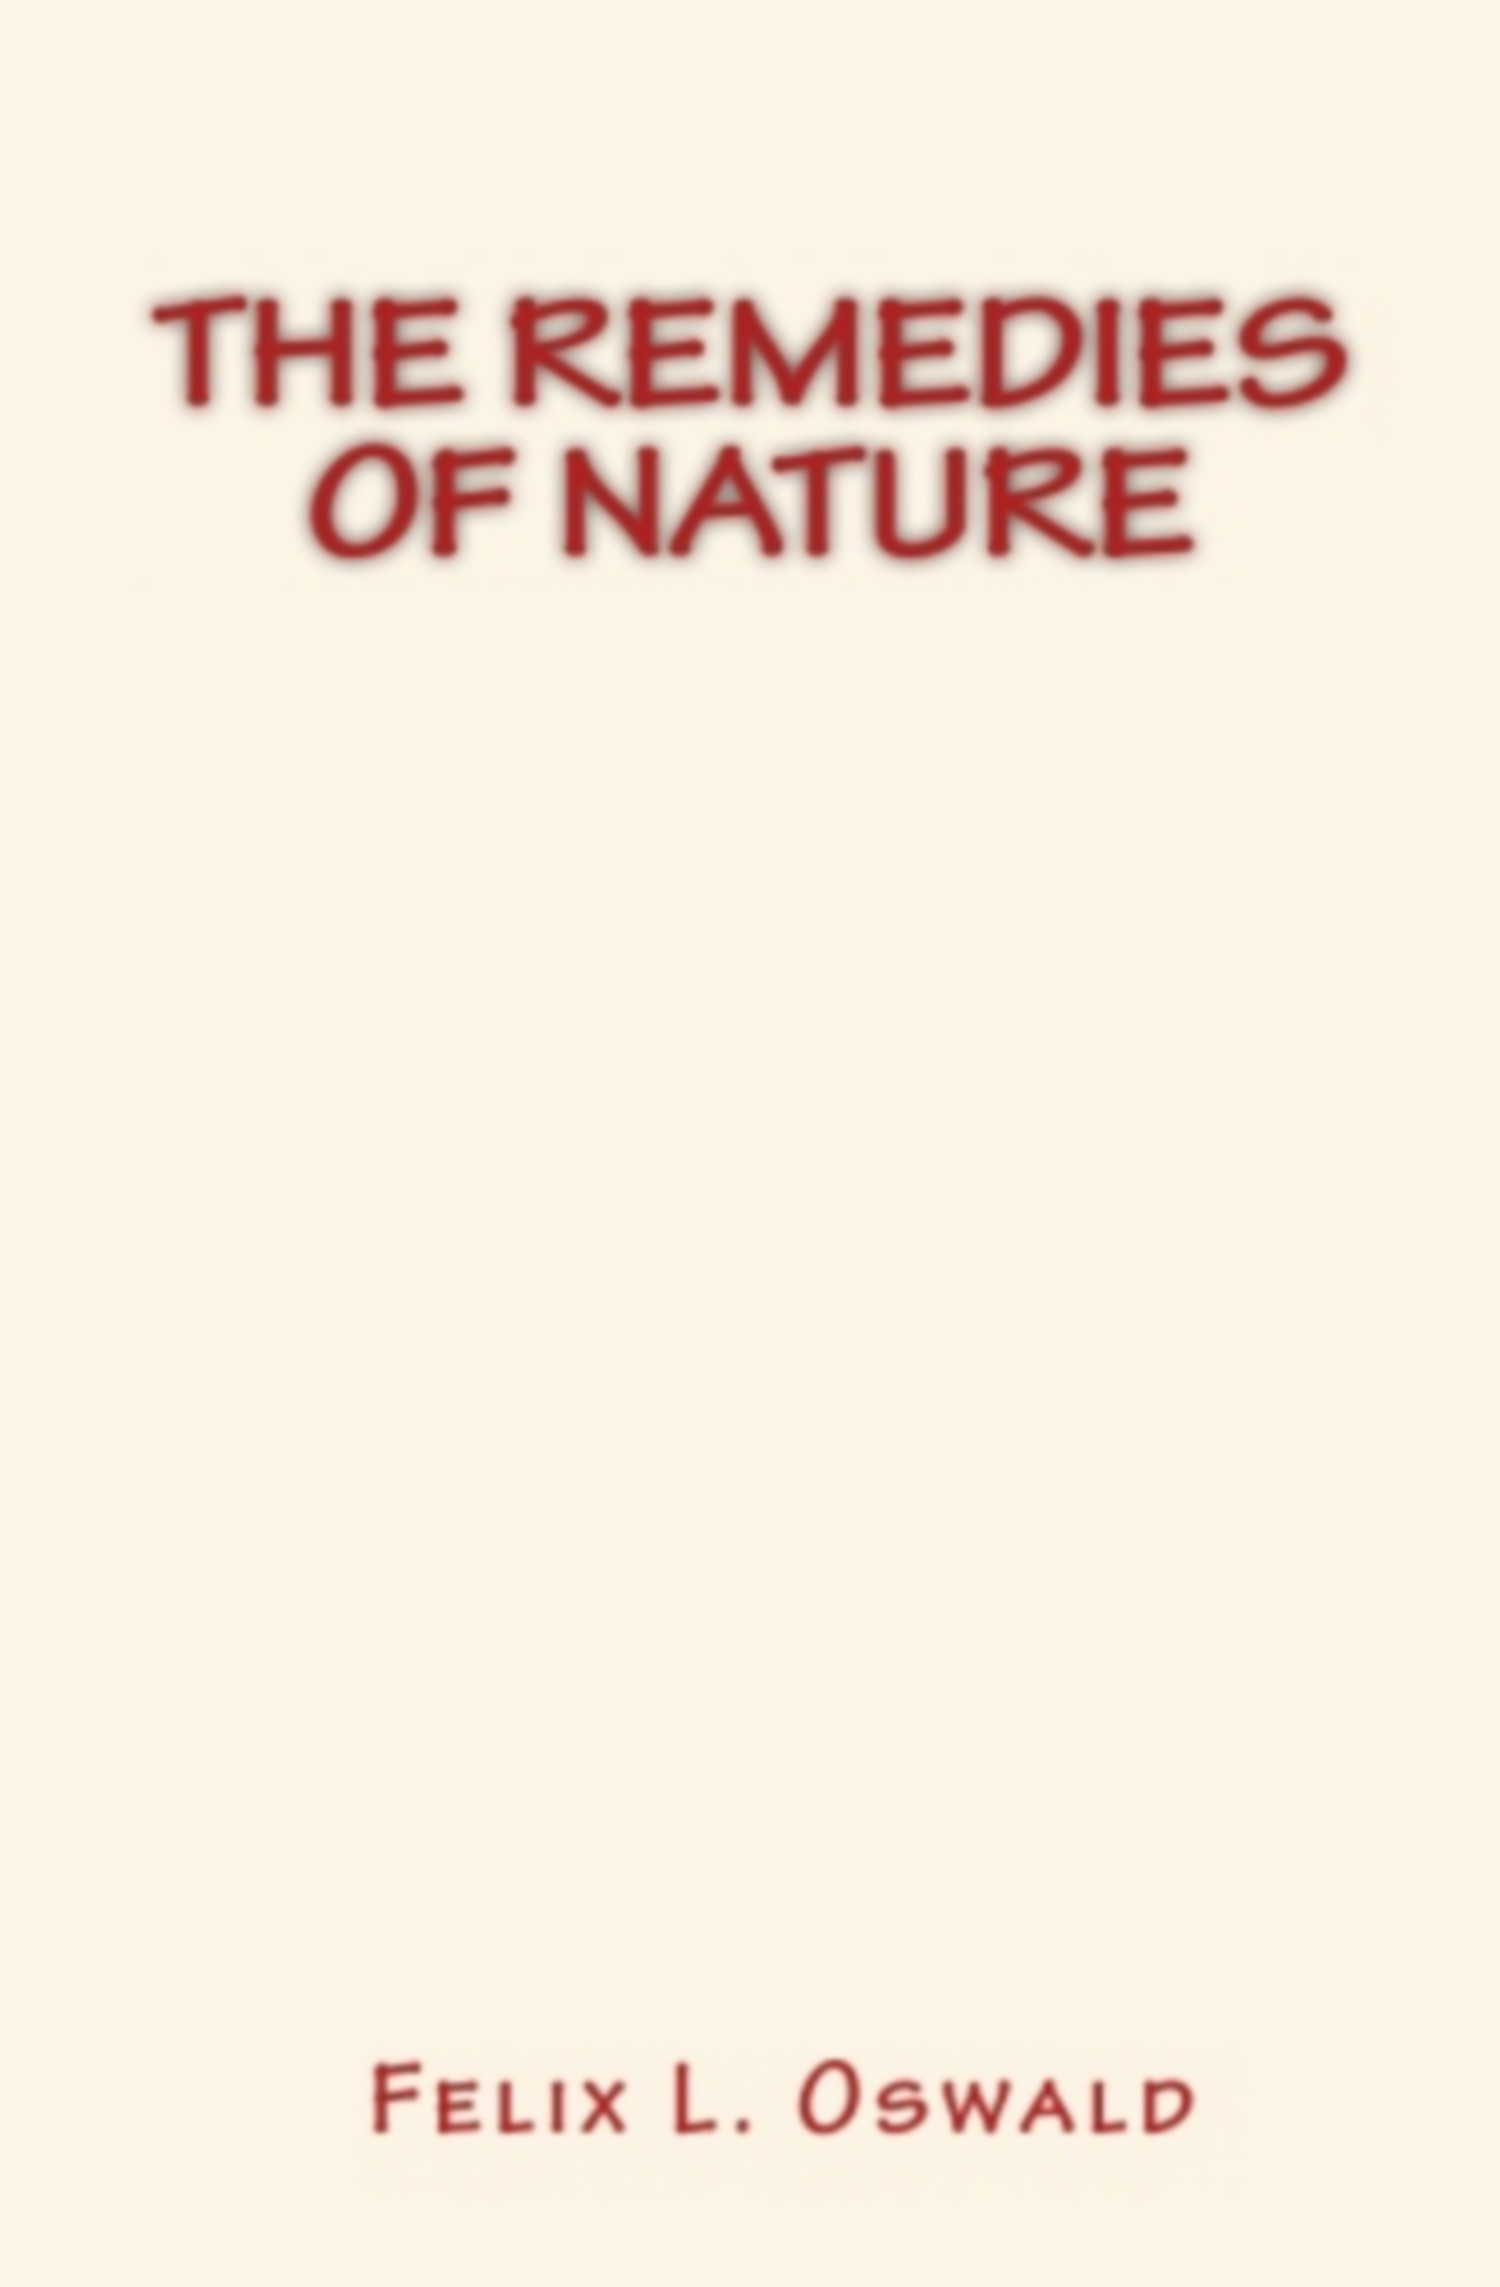 The Remedies of Nature